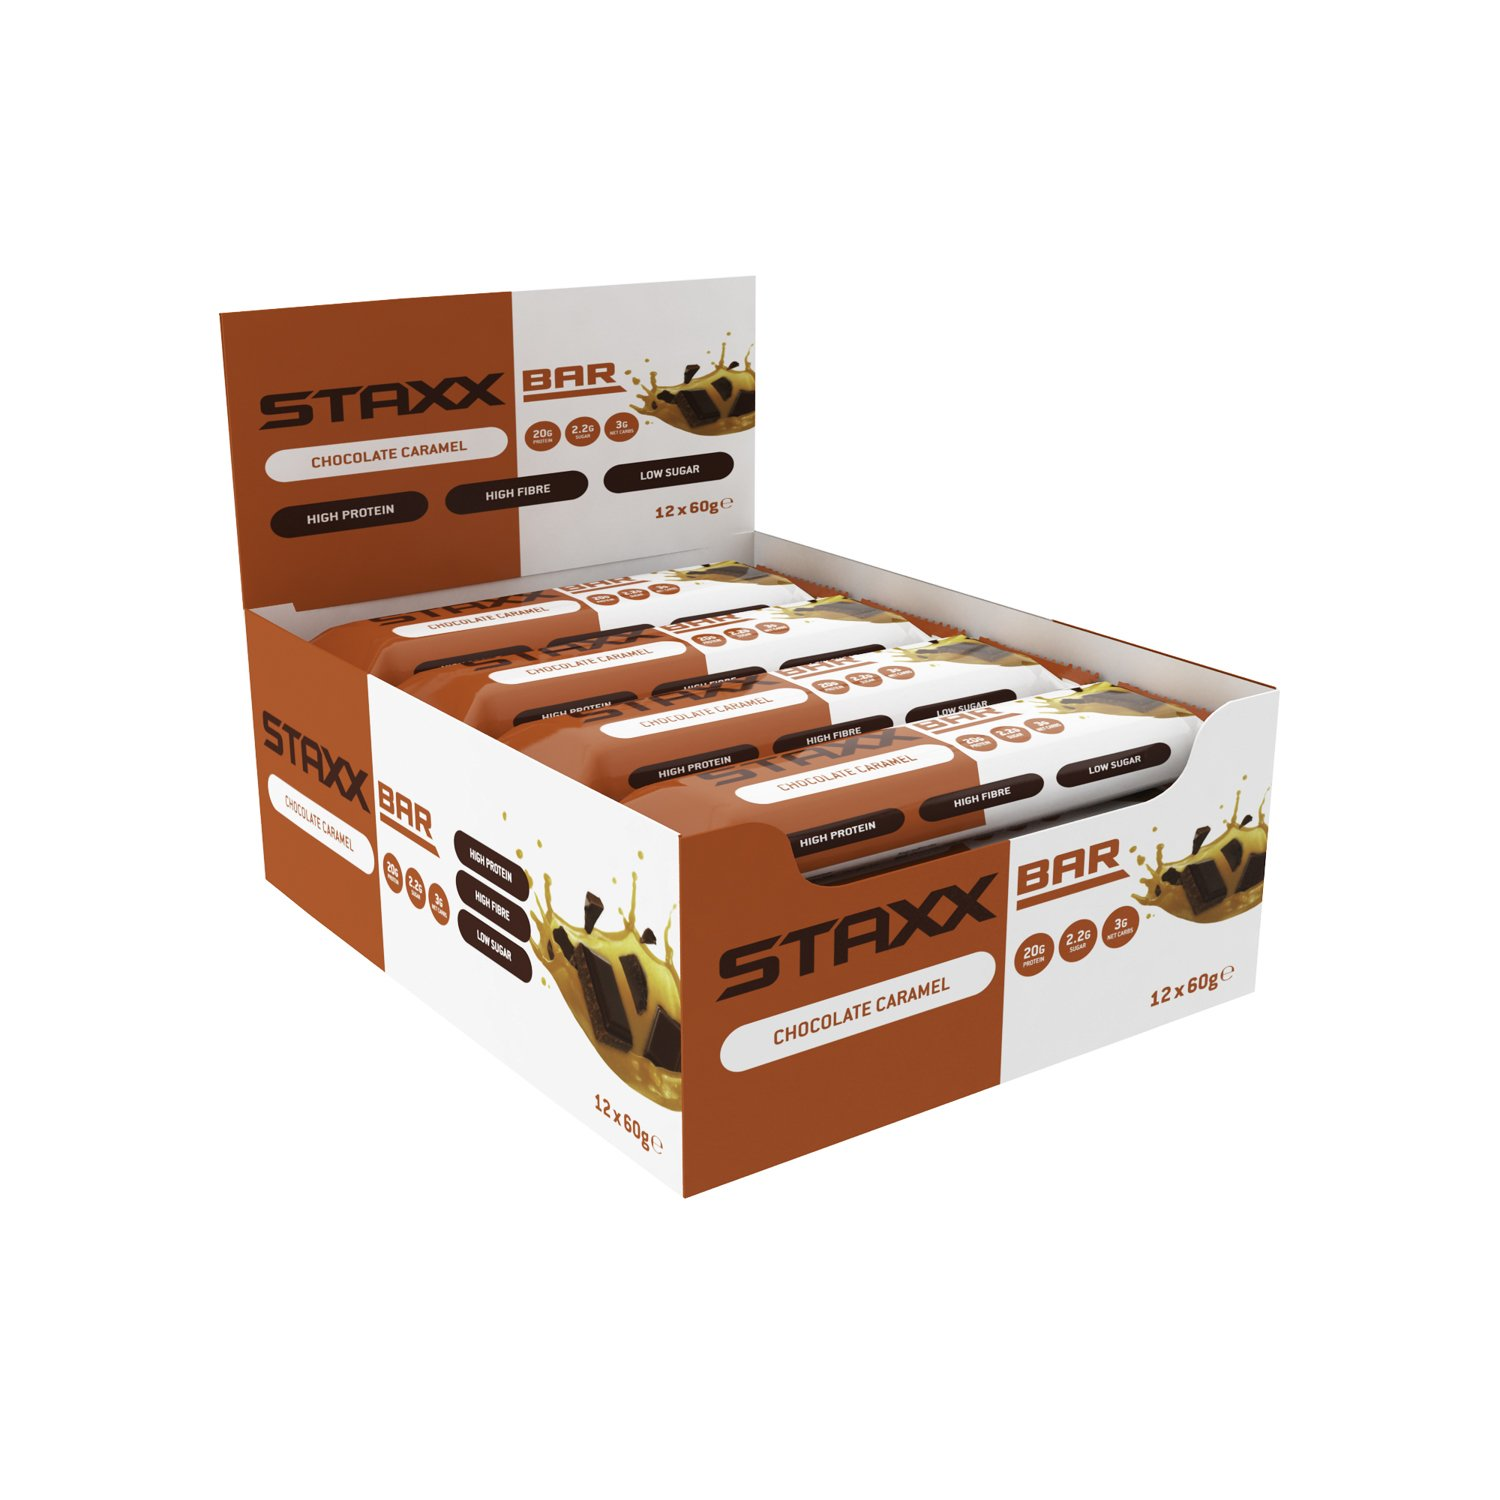 Protein Dynamix STAXX Bar – The Ultimate Low CARB HIGH Protein Bar – Box of 12 x 60g Bars